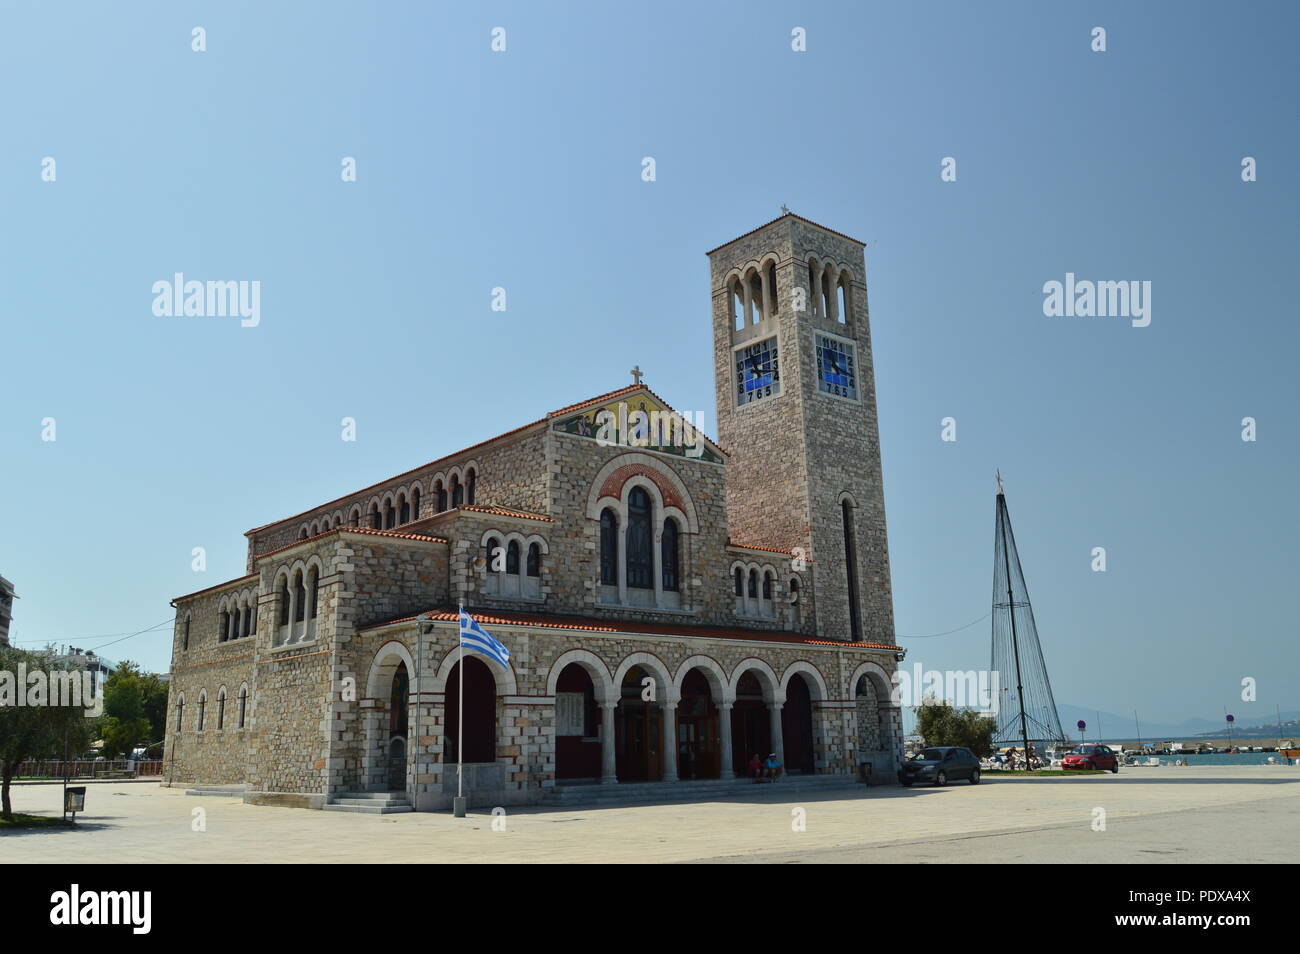 Orthodox Church Of Konstantinos On Its Main Facade. Architecture History Travel.4 July 2018. Volos. Magnesia. Greece. - Stock Image